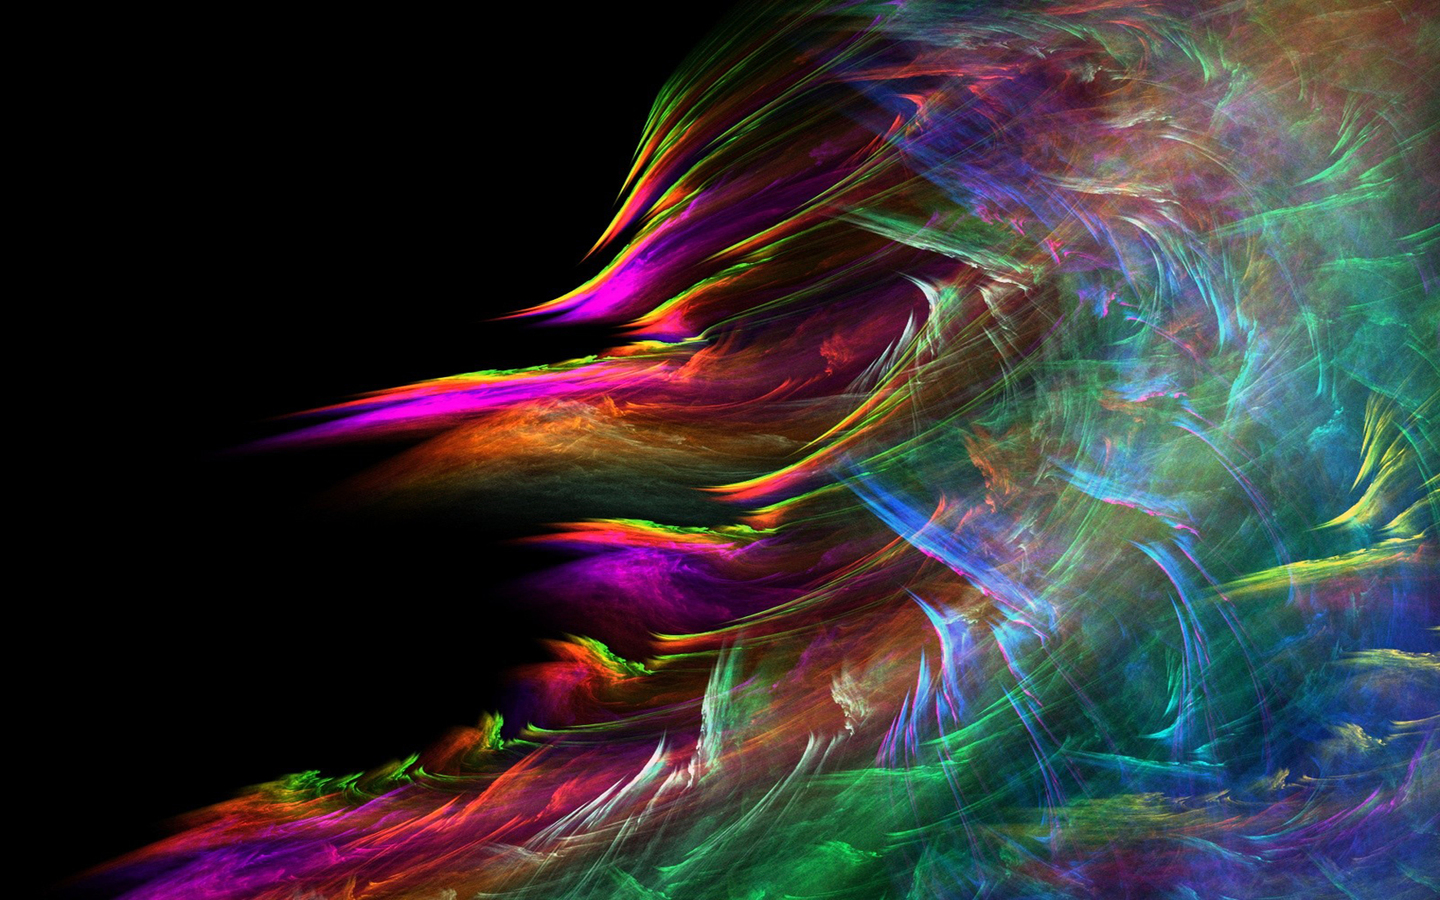 Colorful 3D Abstract Desktop Backgrounds